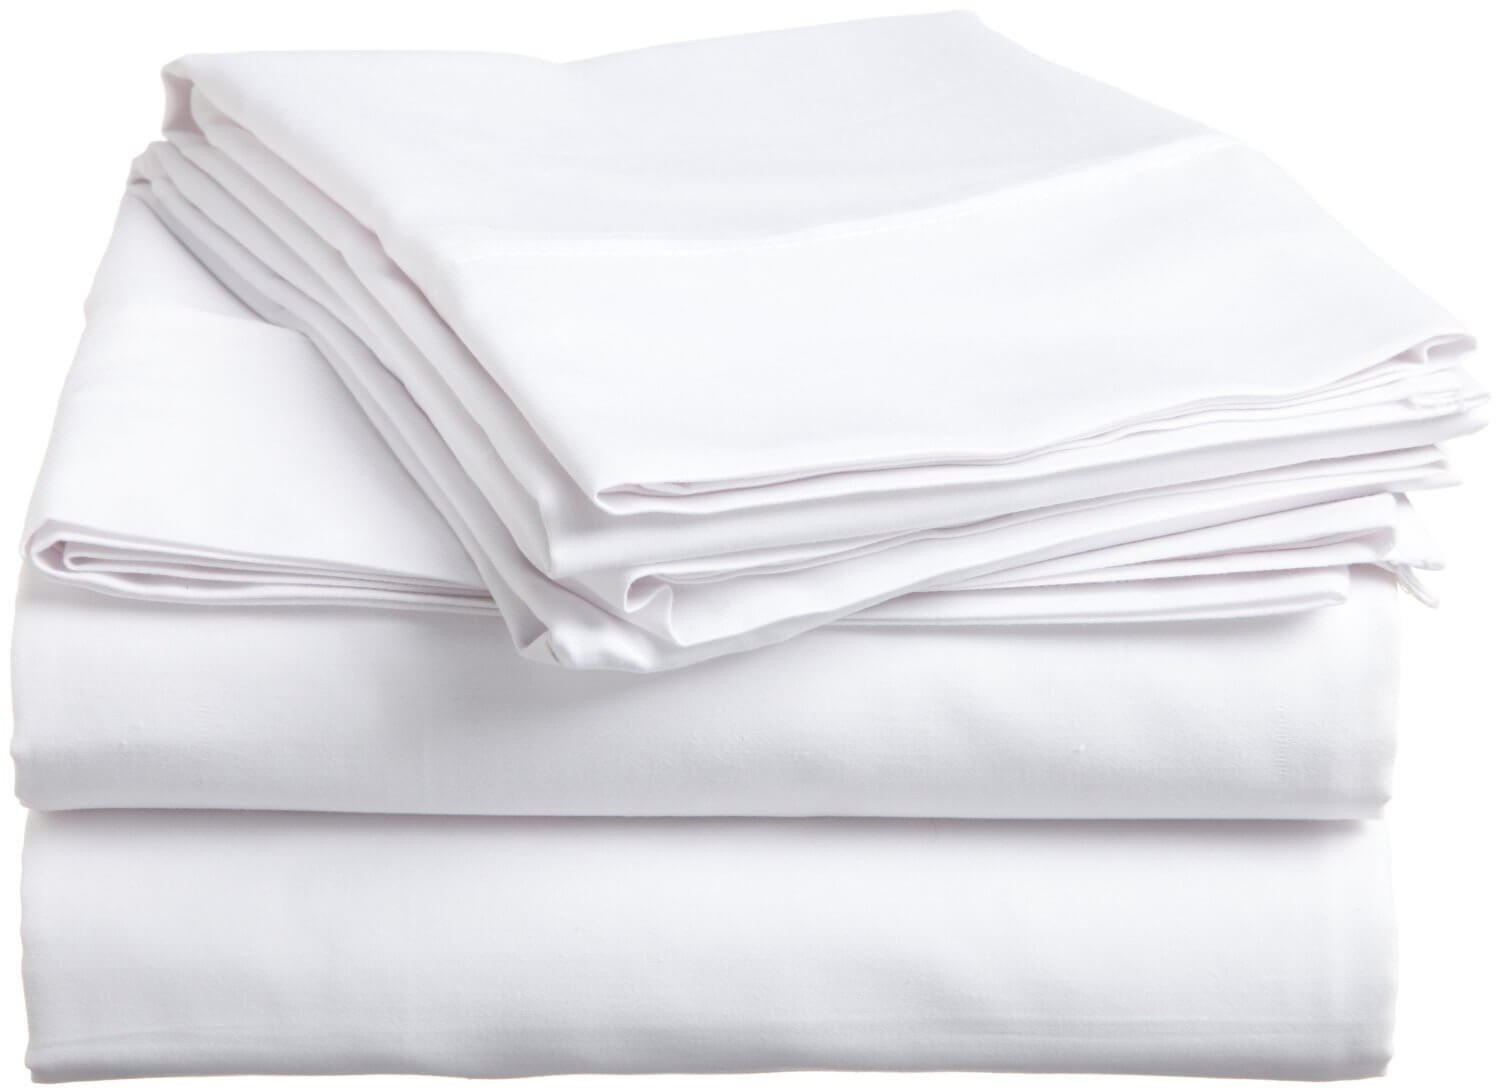 Twin Size White Flat Sheets, 130 Thread-Count 66'' x 102'' (1 dozen - 12 pc)